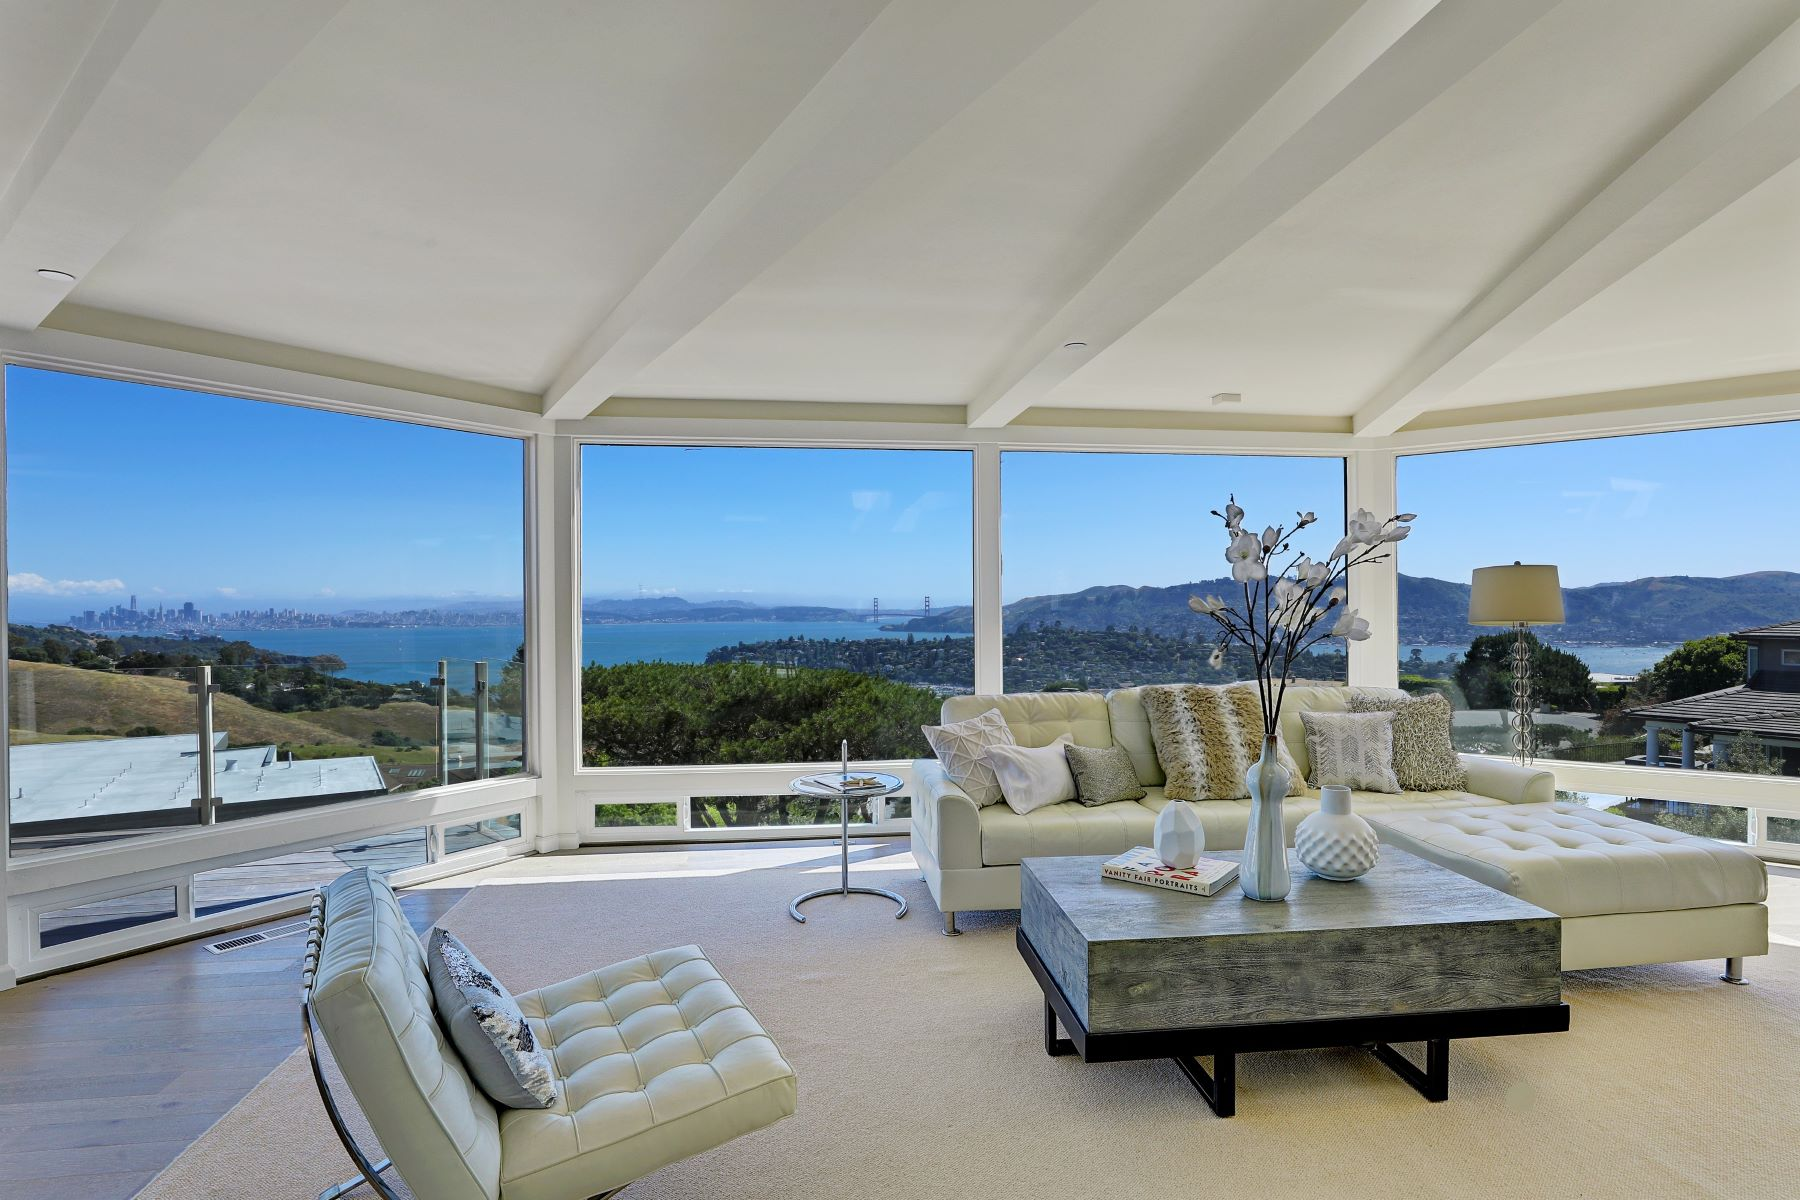 Casa Unifamiliar por un Venta en Expansive, Unobstructed Views! 2 Heathcliff Dr Tiburon, California, 94920 Estados Unidos